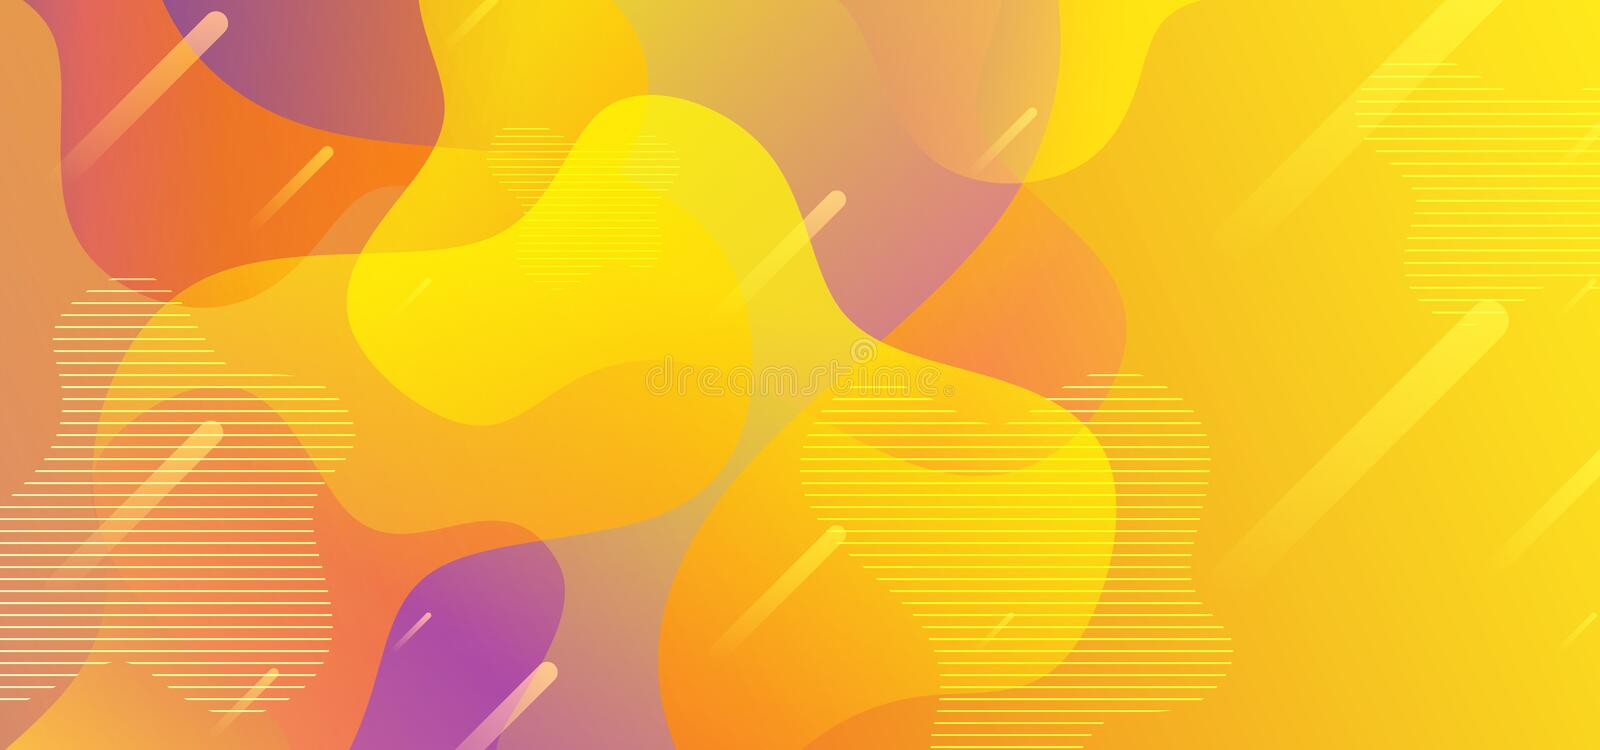 Background abstract liquid shapes with yellow flow fluid gradient colorful vector eps 10. Geometric modern trendy style royalty free illustration